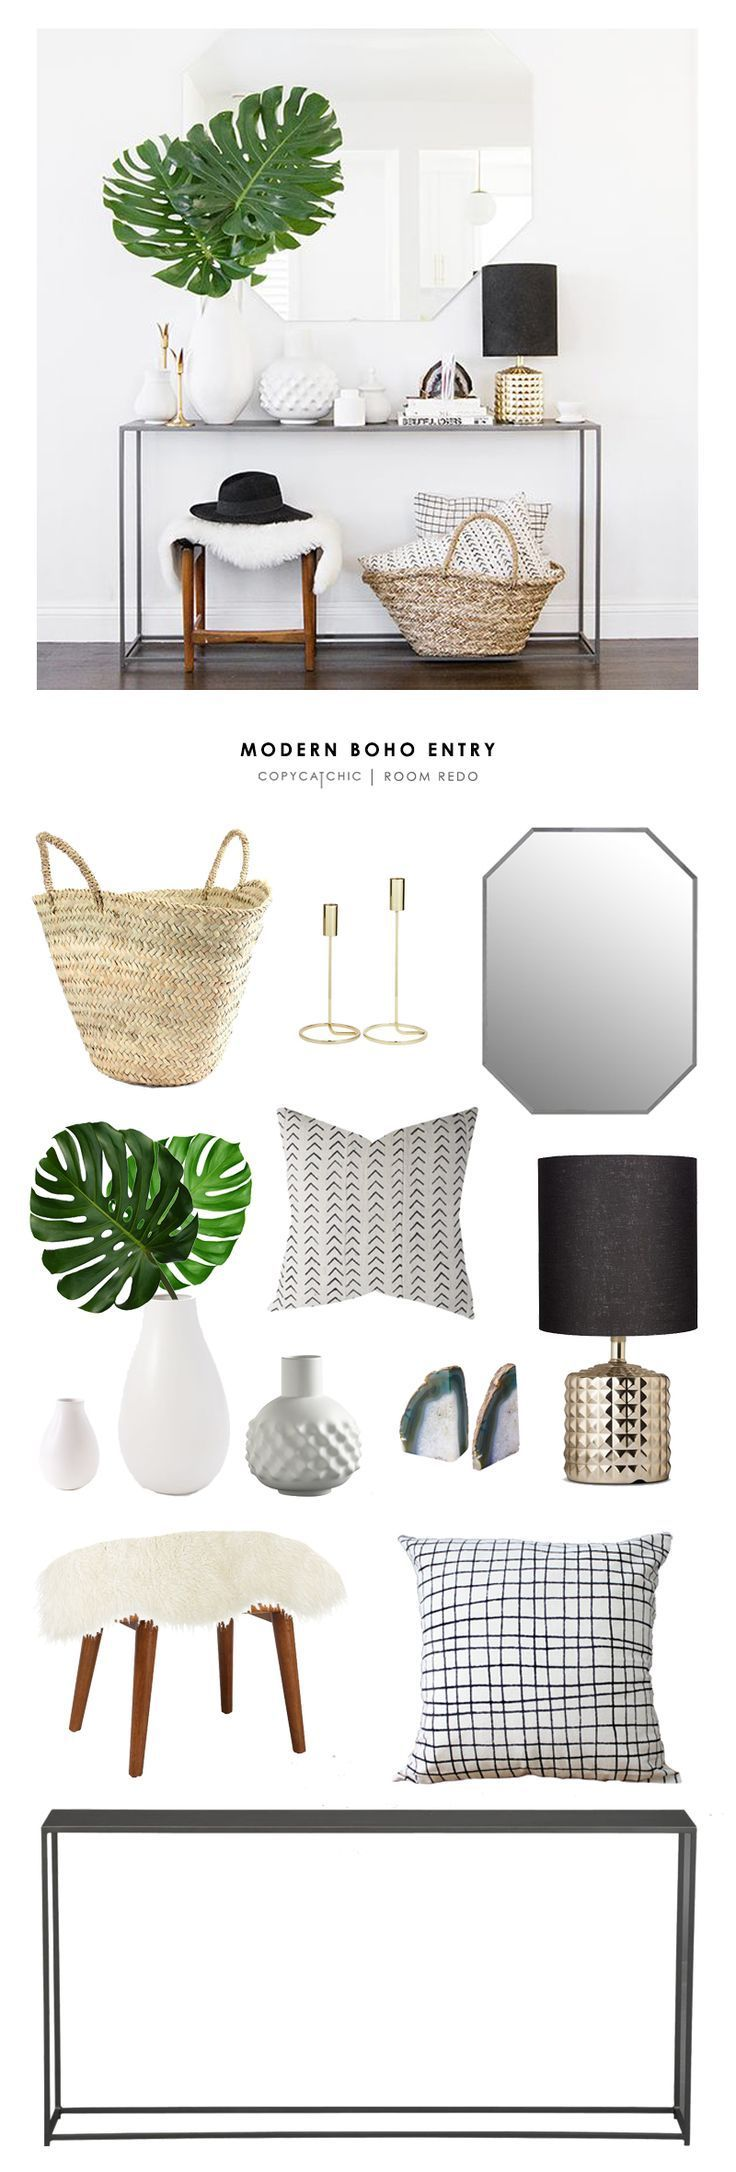 cool TOTAL | $1,198 CONSOLE $299 | STOOL $96 | BASKET $22 | MIRROR $300 | BOOKENDS...